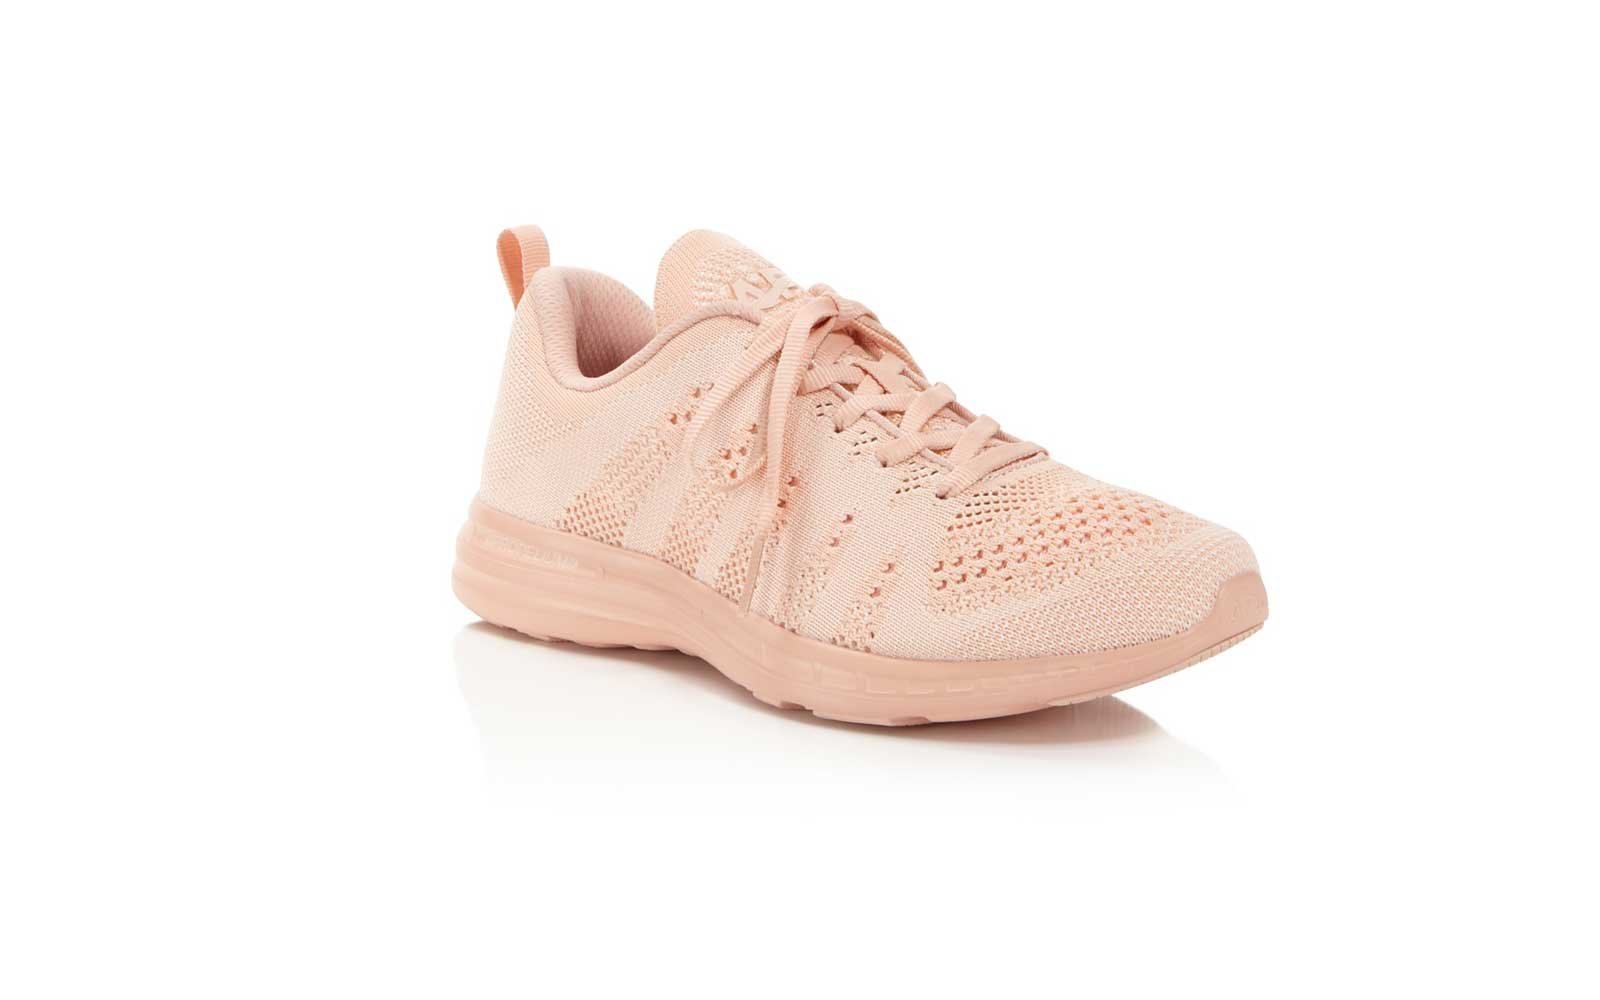 1. APL Athletic Propulsion Labs Women's TechLoom Pro Knit Lace Up Sneakers